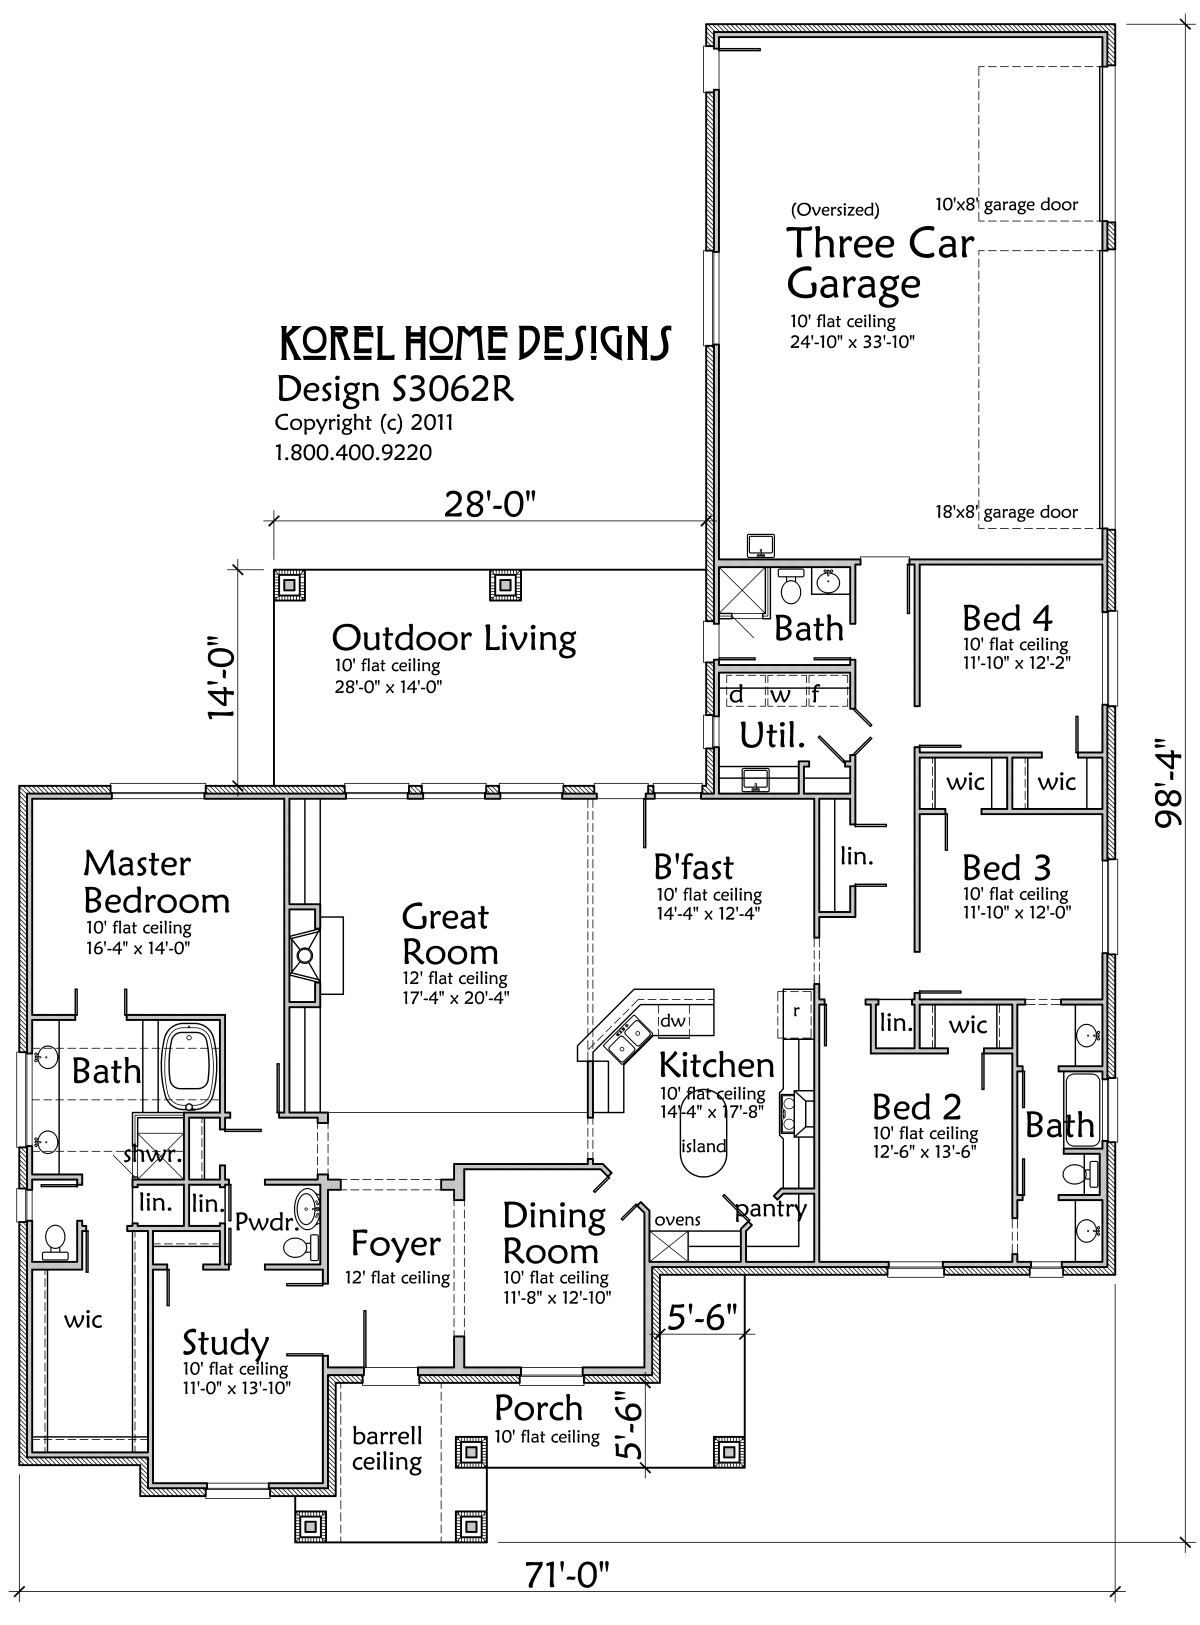 House Plans By Korel Home Designs Garage House Plans House Floor Plans House Flooring